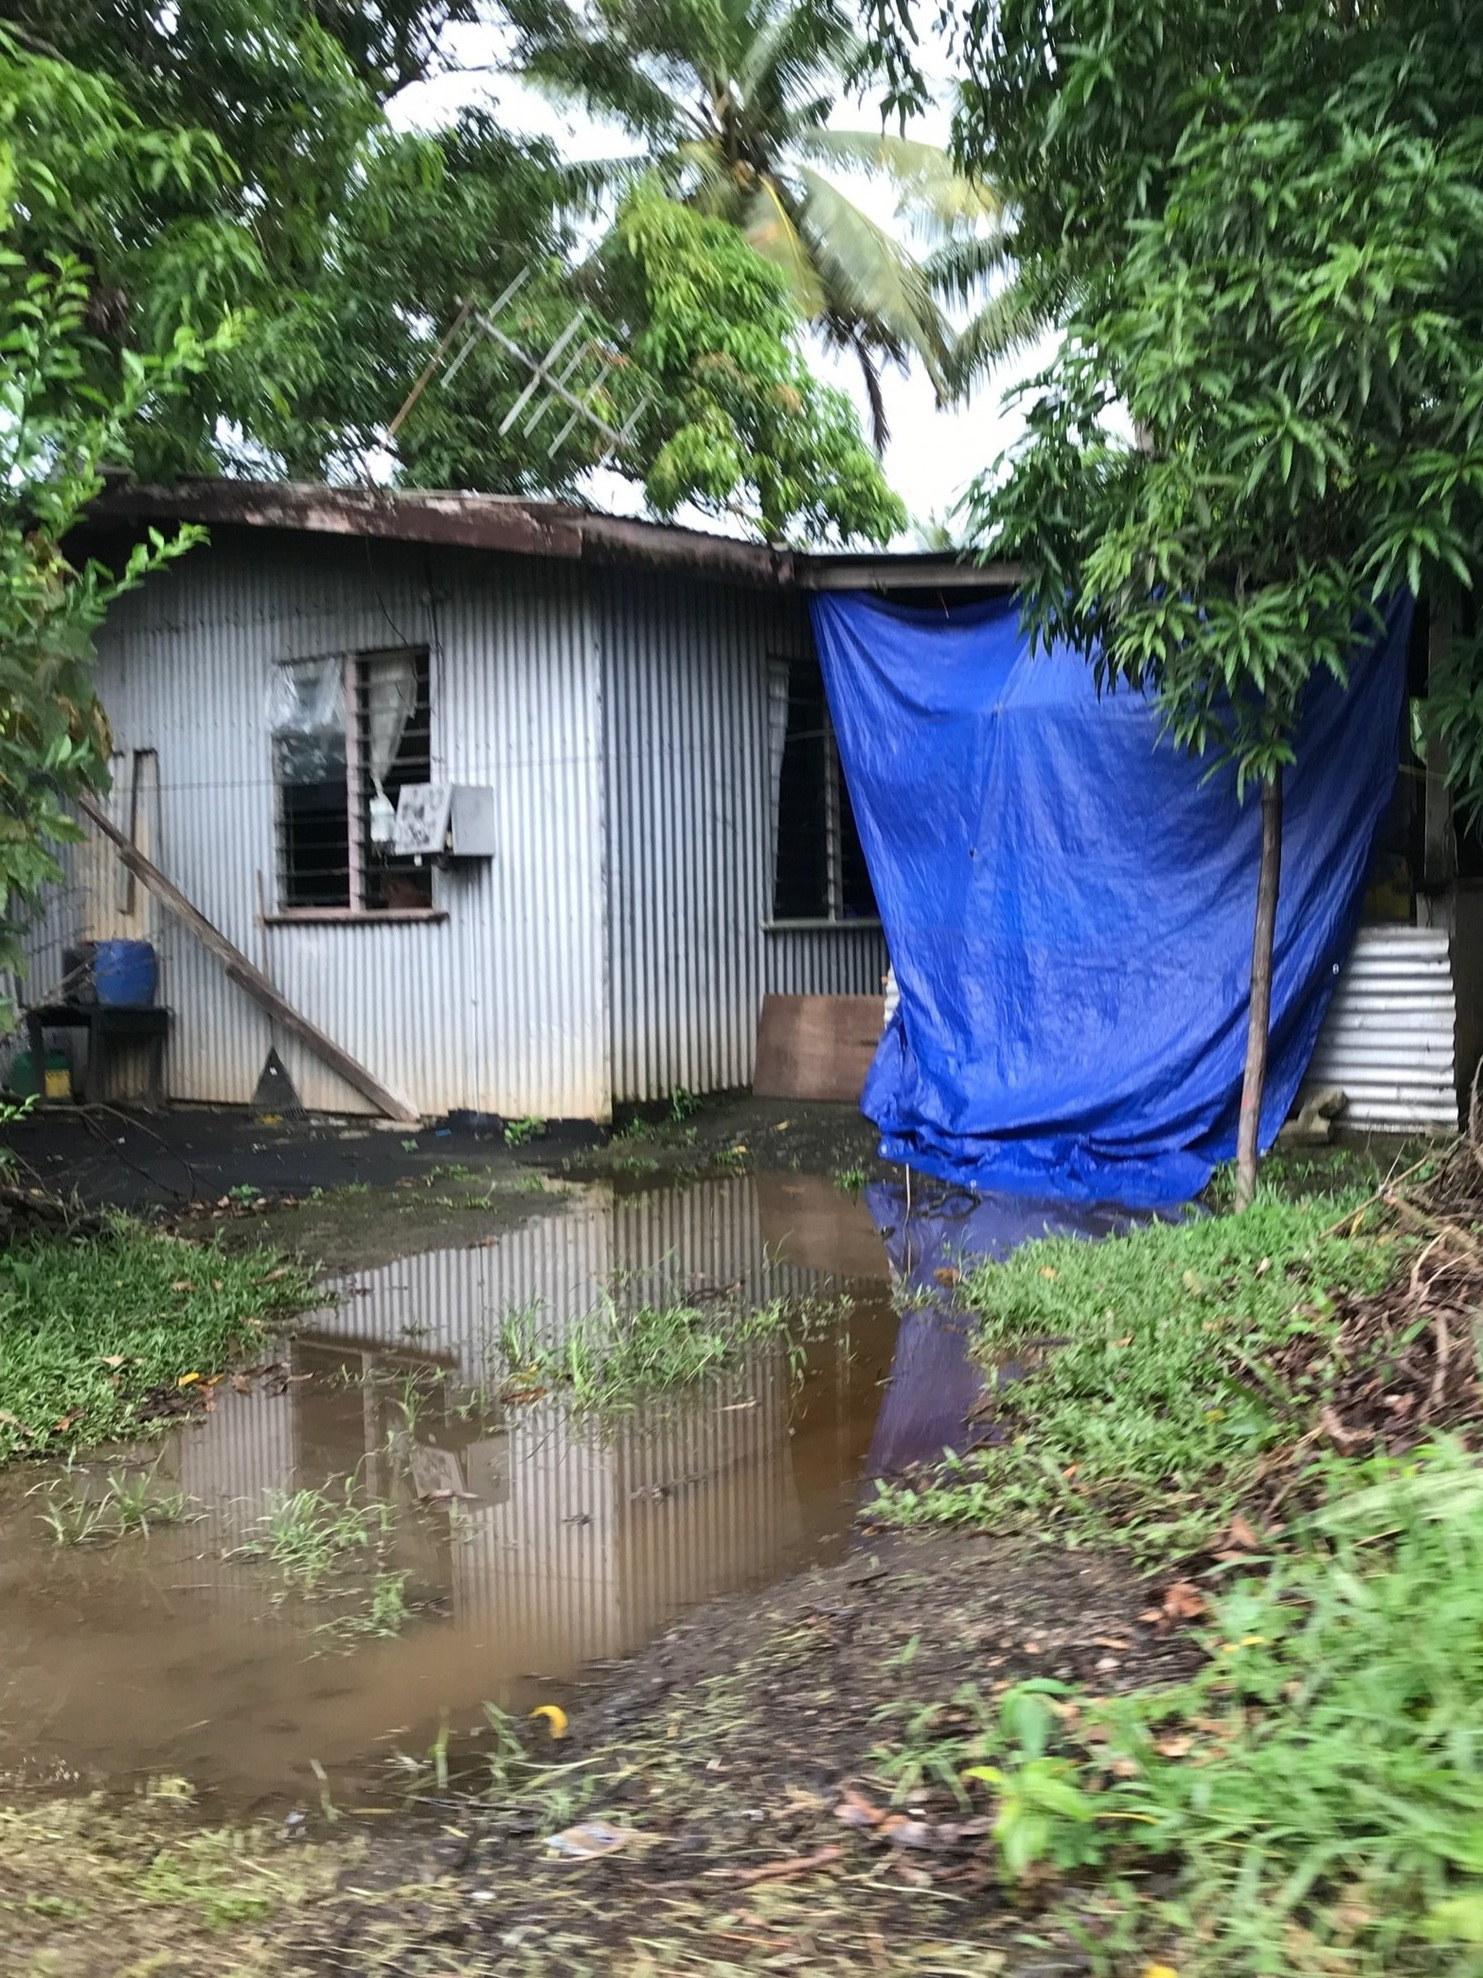 One of the informal settlement homes. This photo was taken approximately five minutes after moderate rainfall. As the settlement is located in a flood-prone region, heavy rains often result in home being entirely submerged beneath water levels. PhoTo by Yanik Rozon.